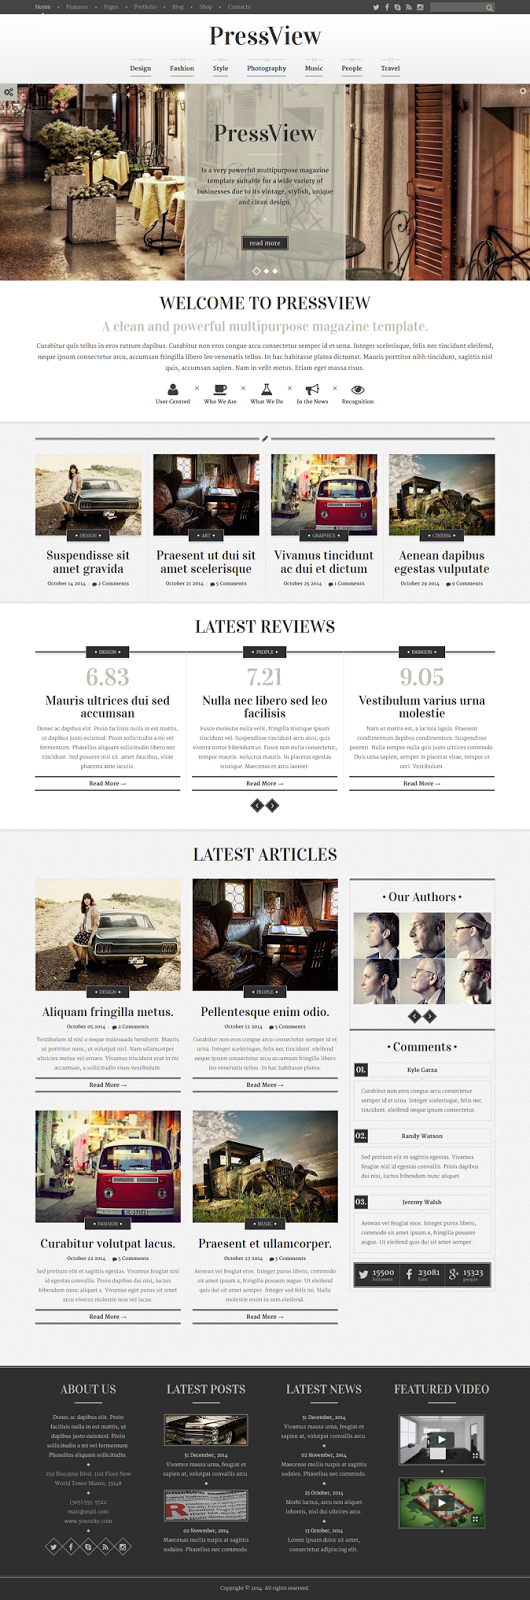 Premium Stylish Magazine Template